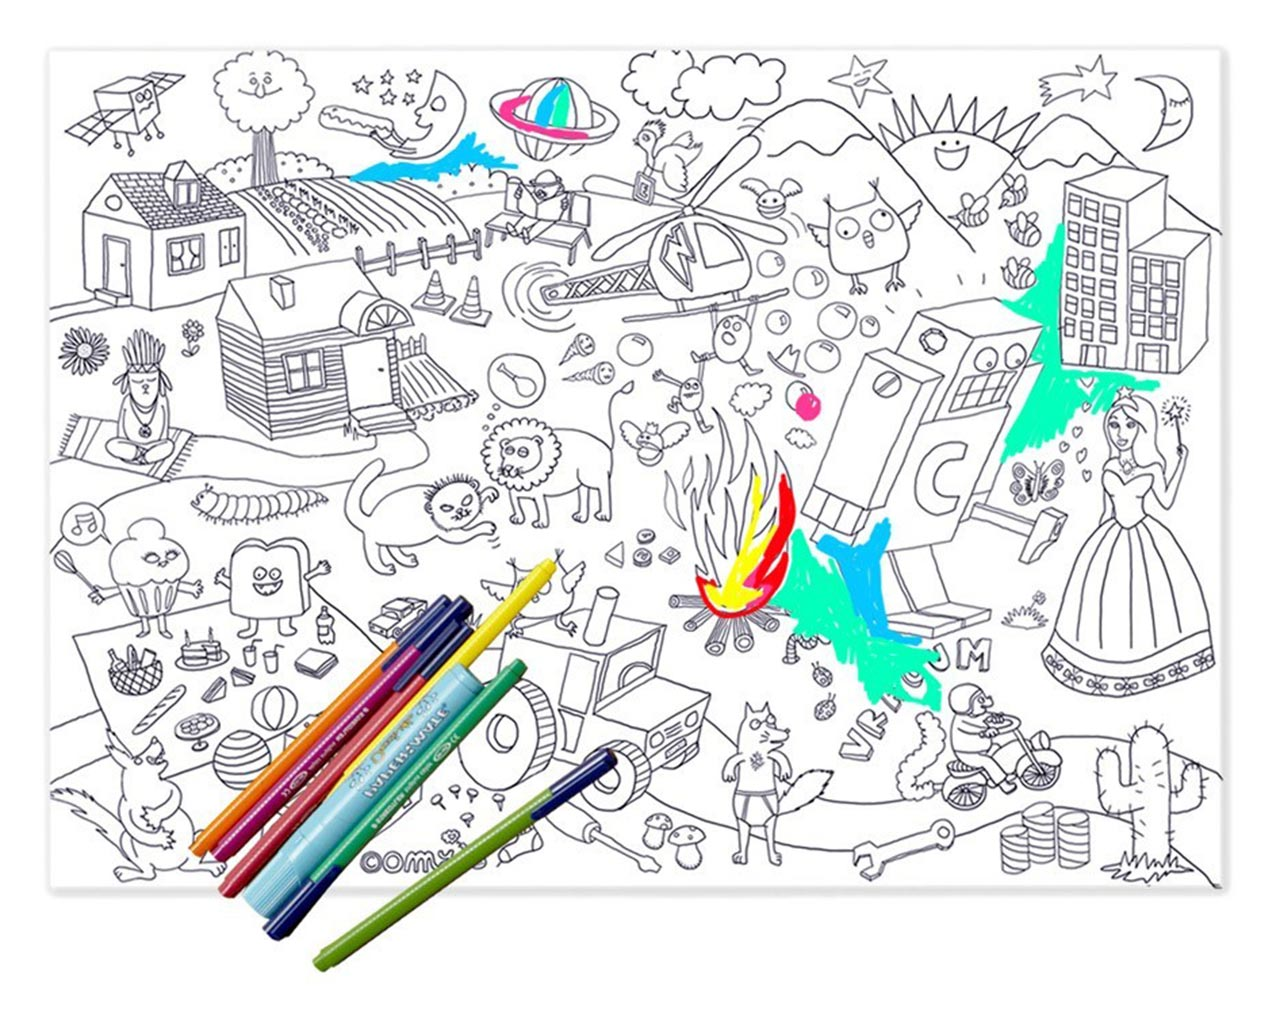 Moroni Gomma - OMY Design & Play Colouring Collection